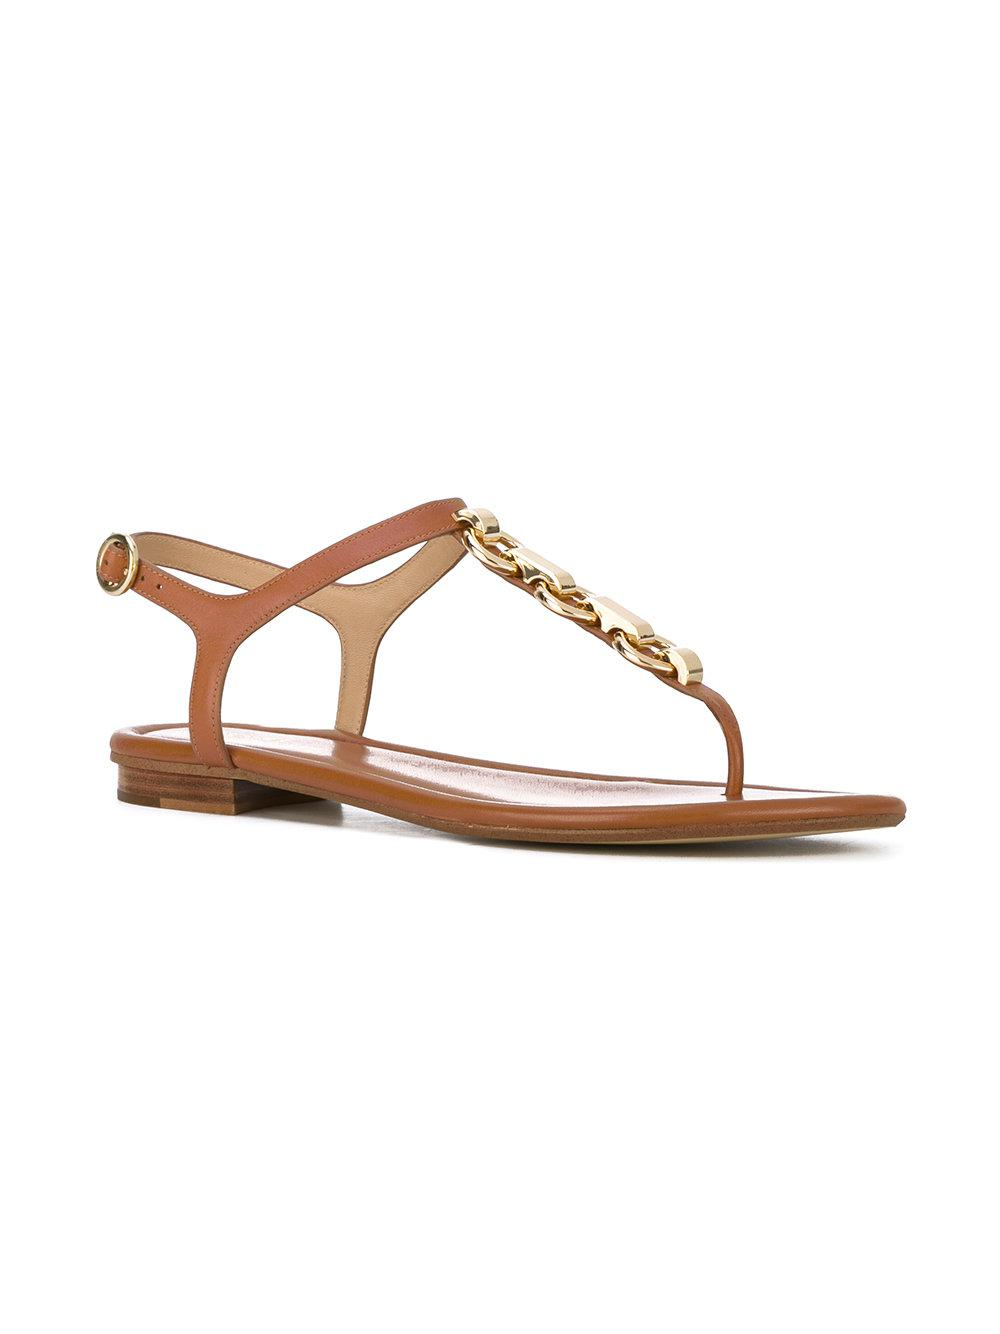 2aee2552880 Lyst - Michael Michael Kors Metallic Embellished Sandals in Metallic